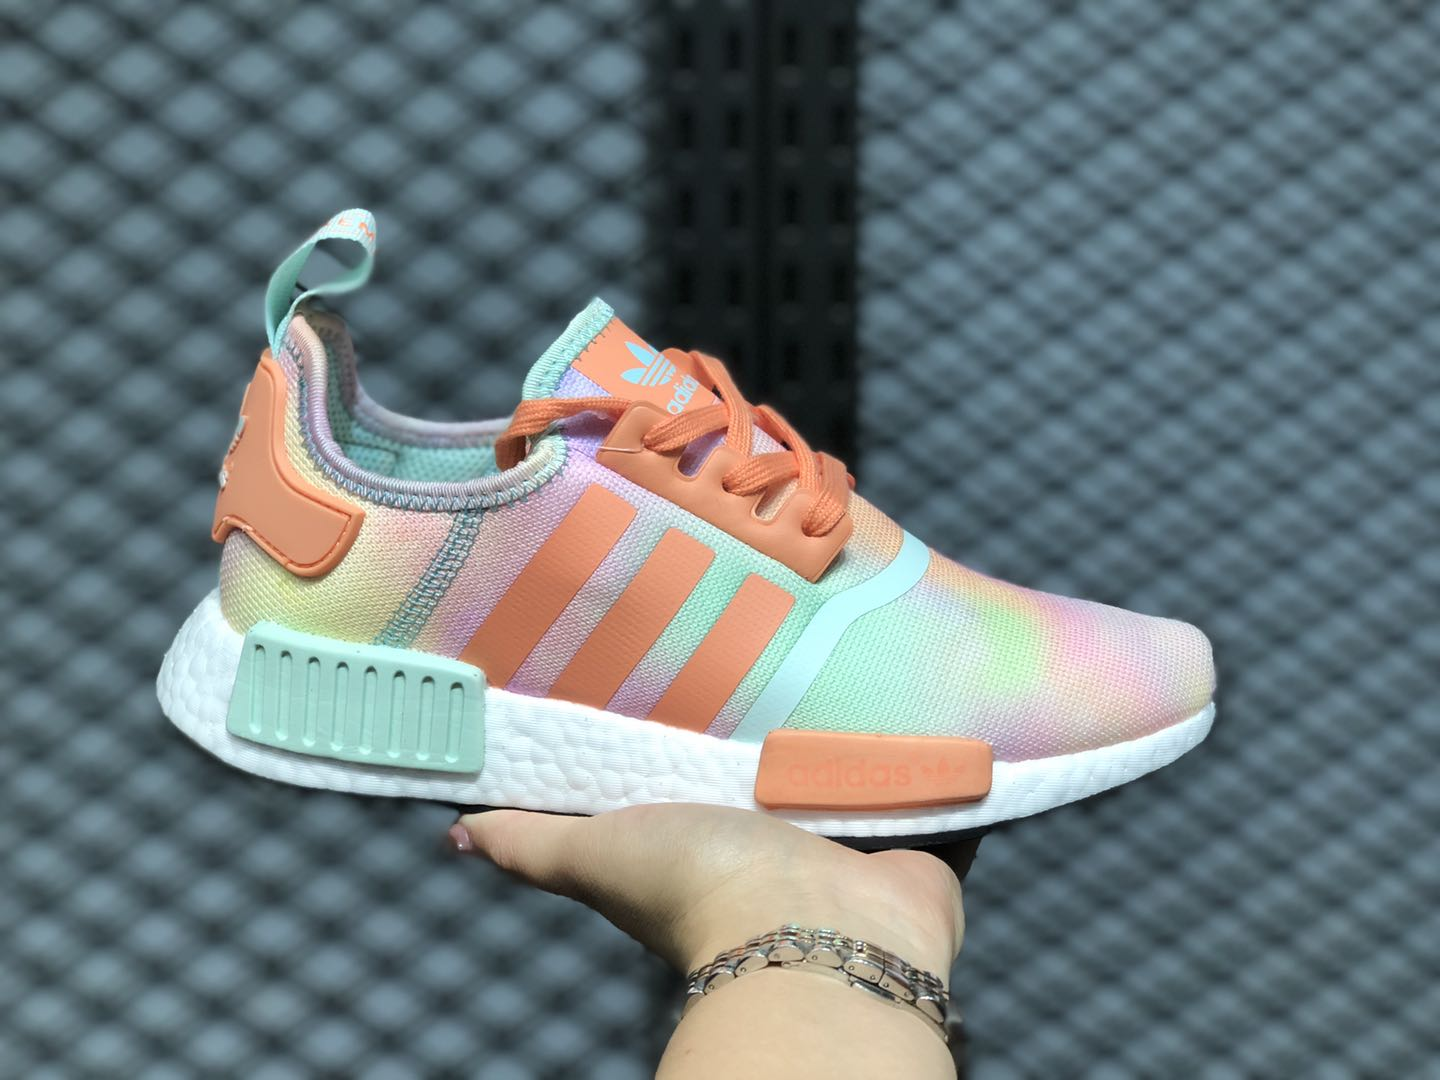 Adidas NMD R1 Easter FY1271 White/Chalk